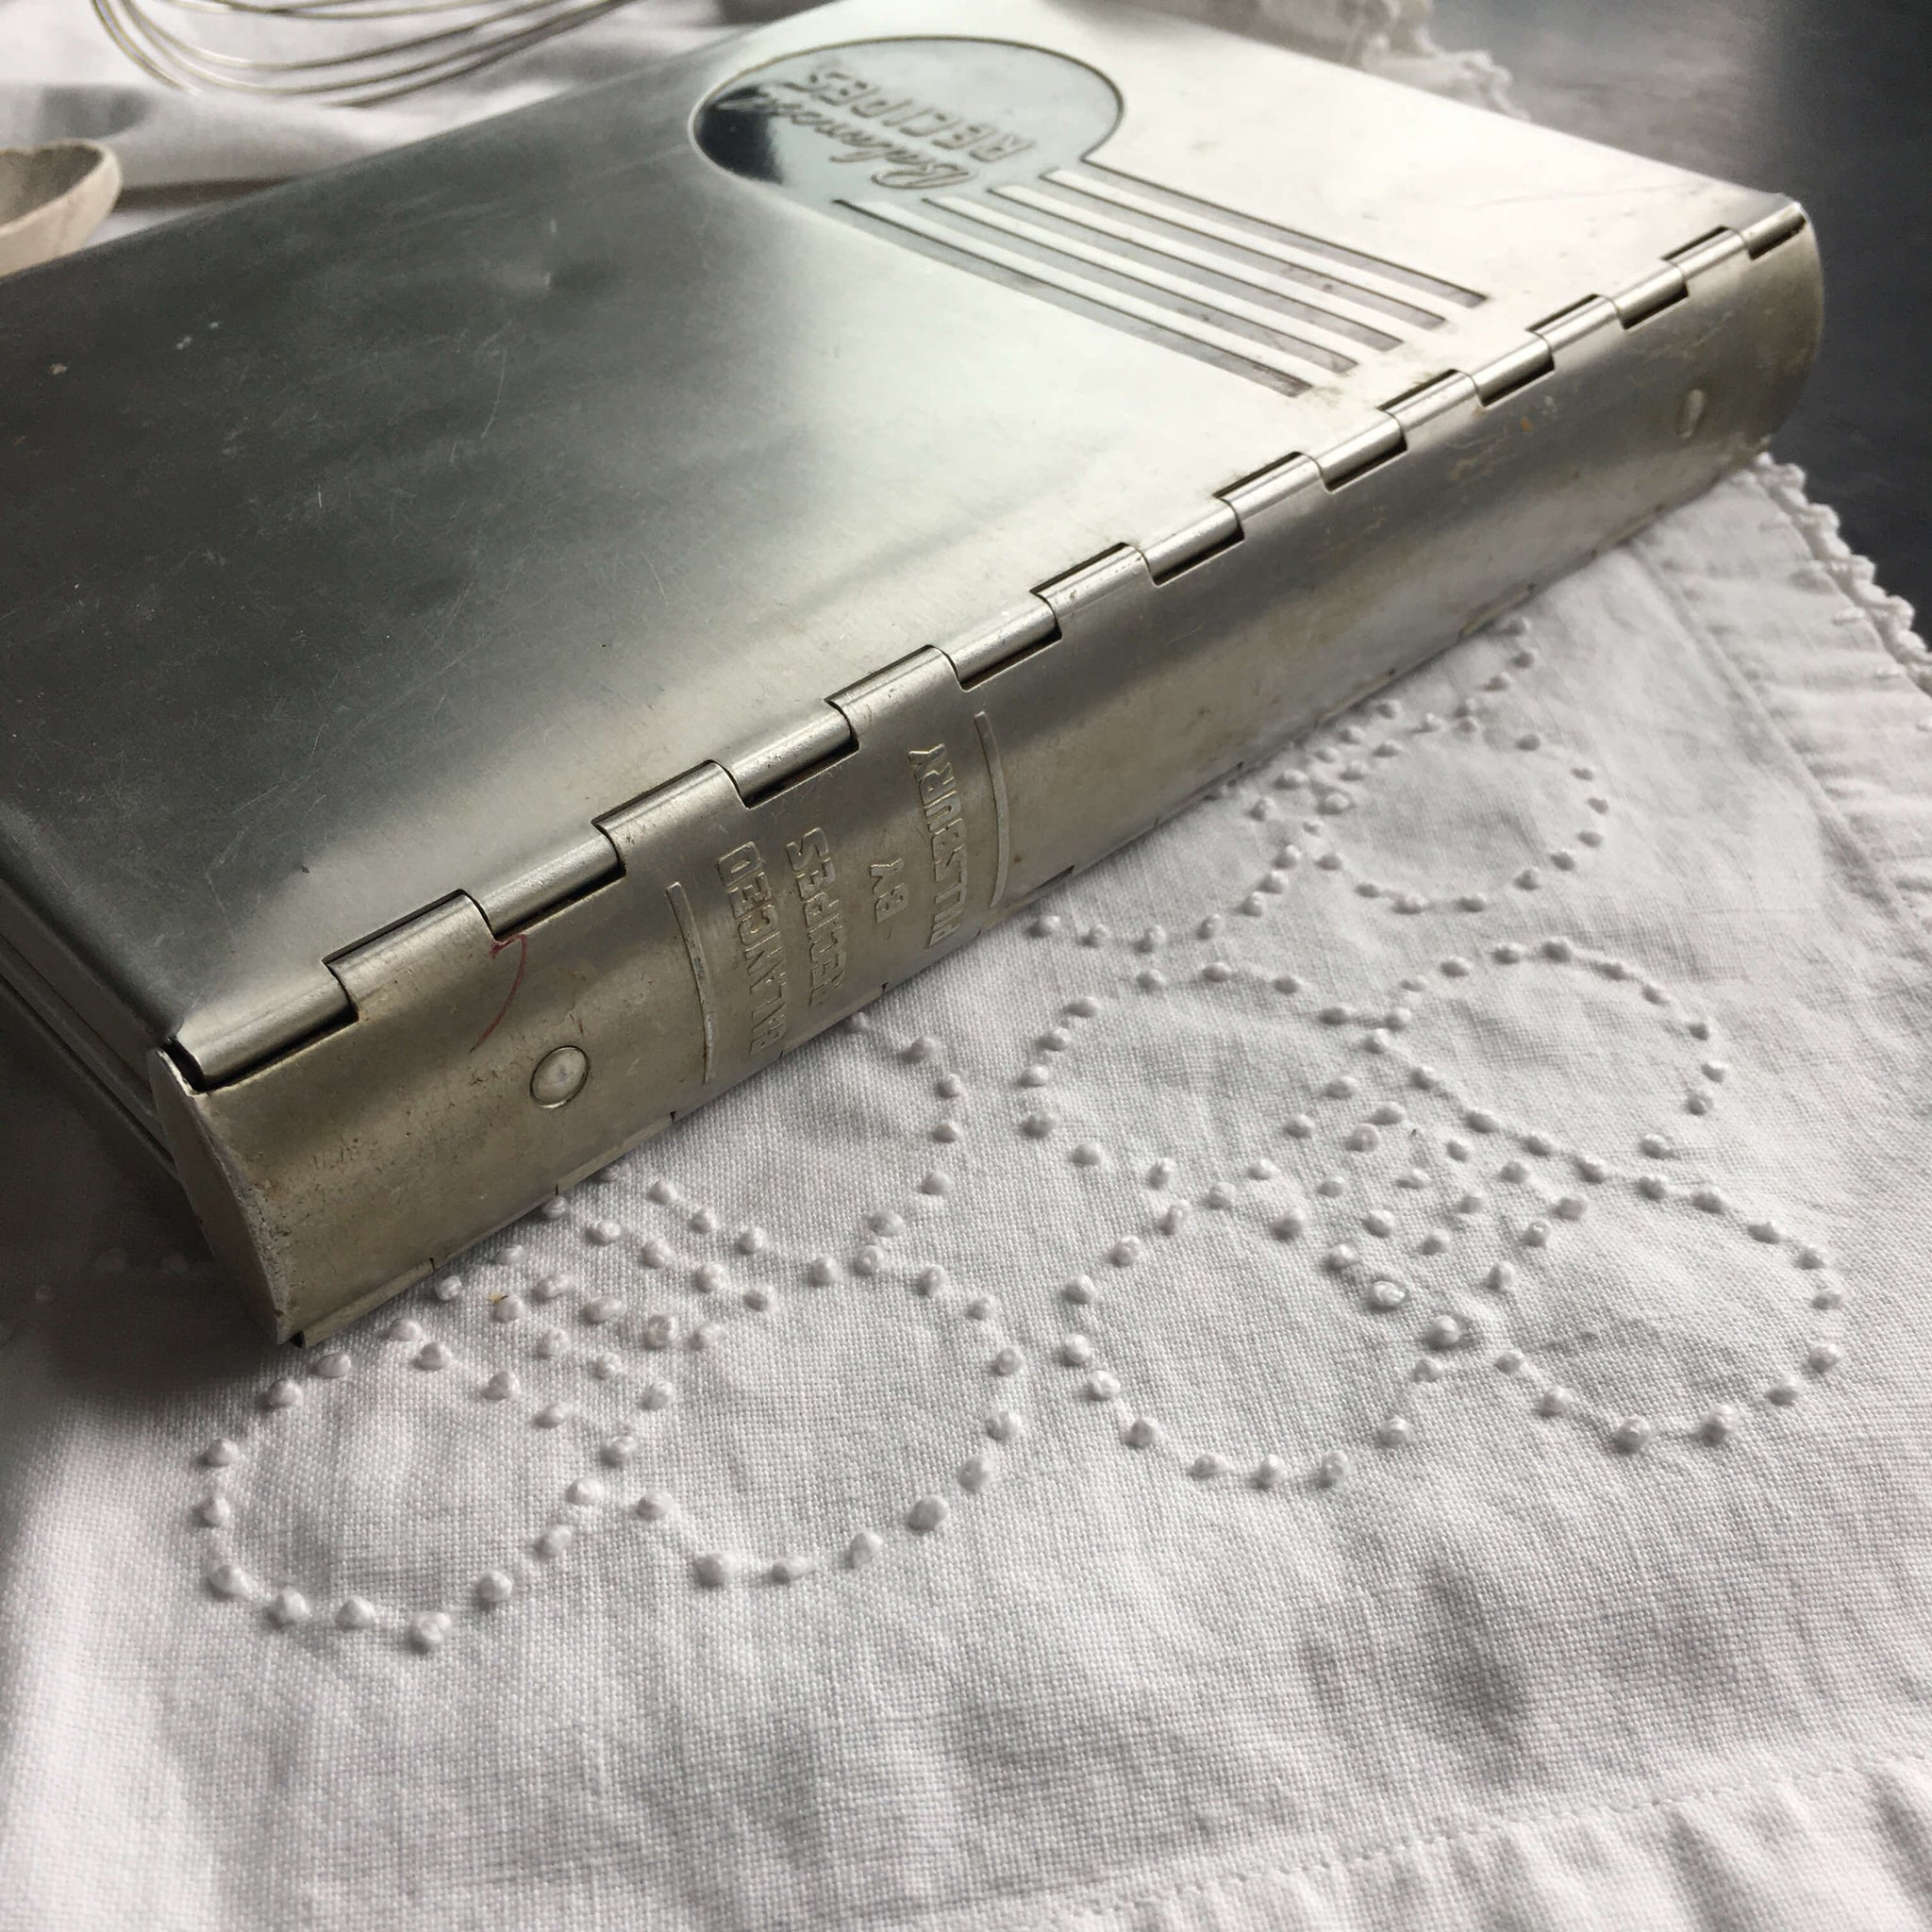 1930s Pillsbury Cookbook - Balanced Recipes - Mary Ellis Ames - Aluminium Cover and Ring Binder Style  circa 1933